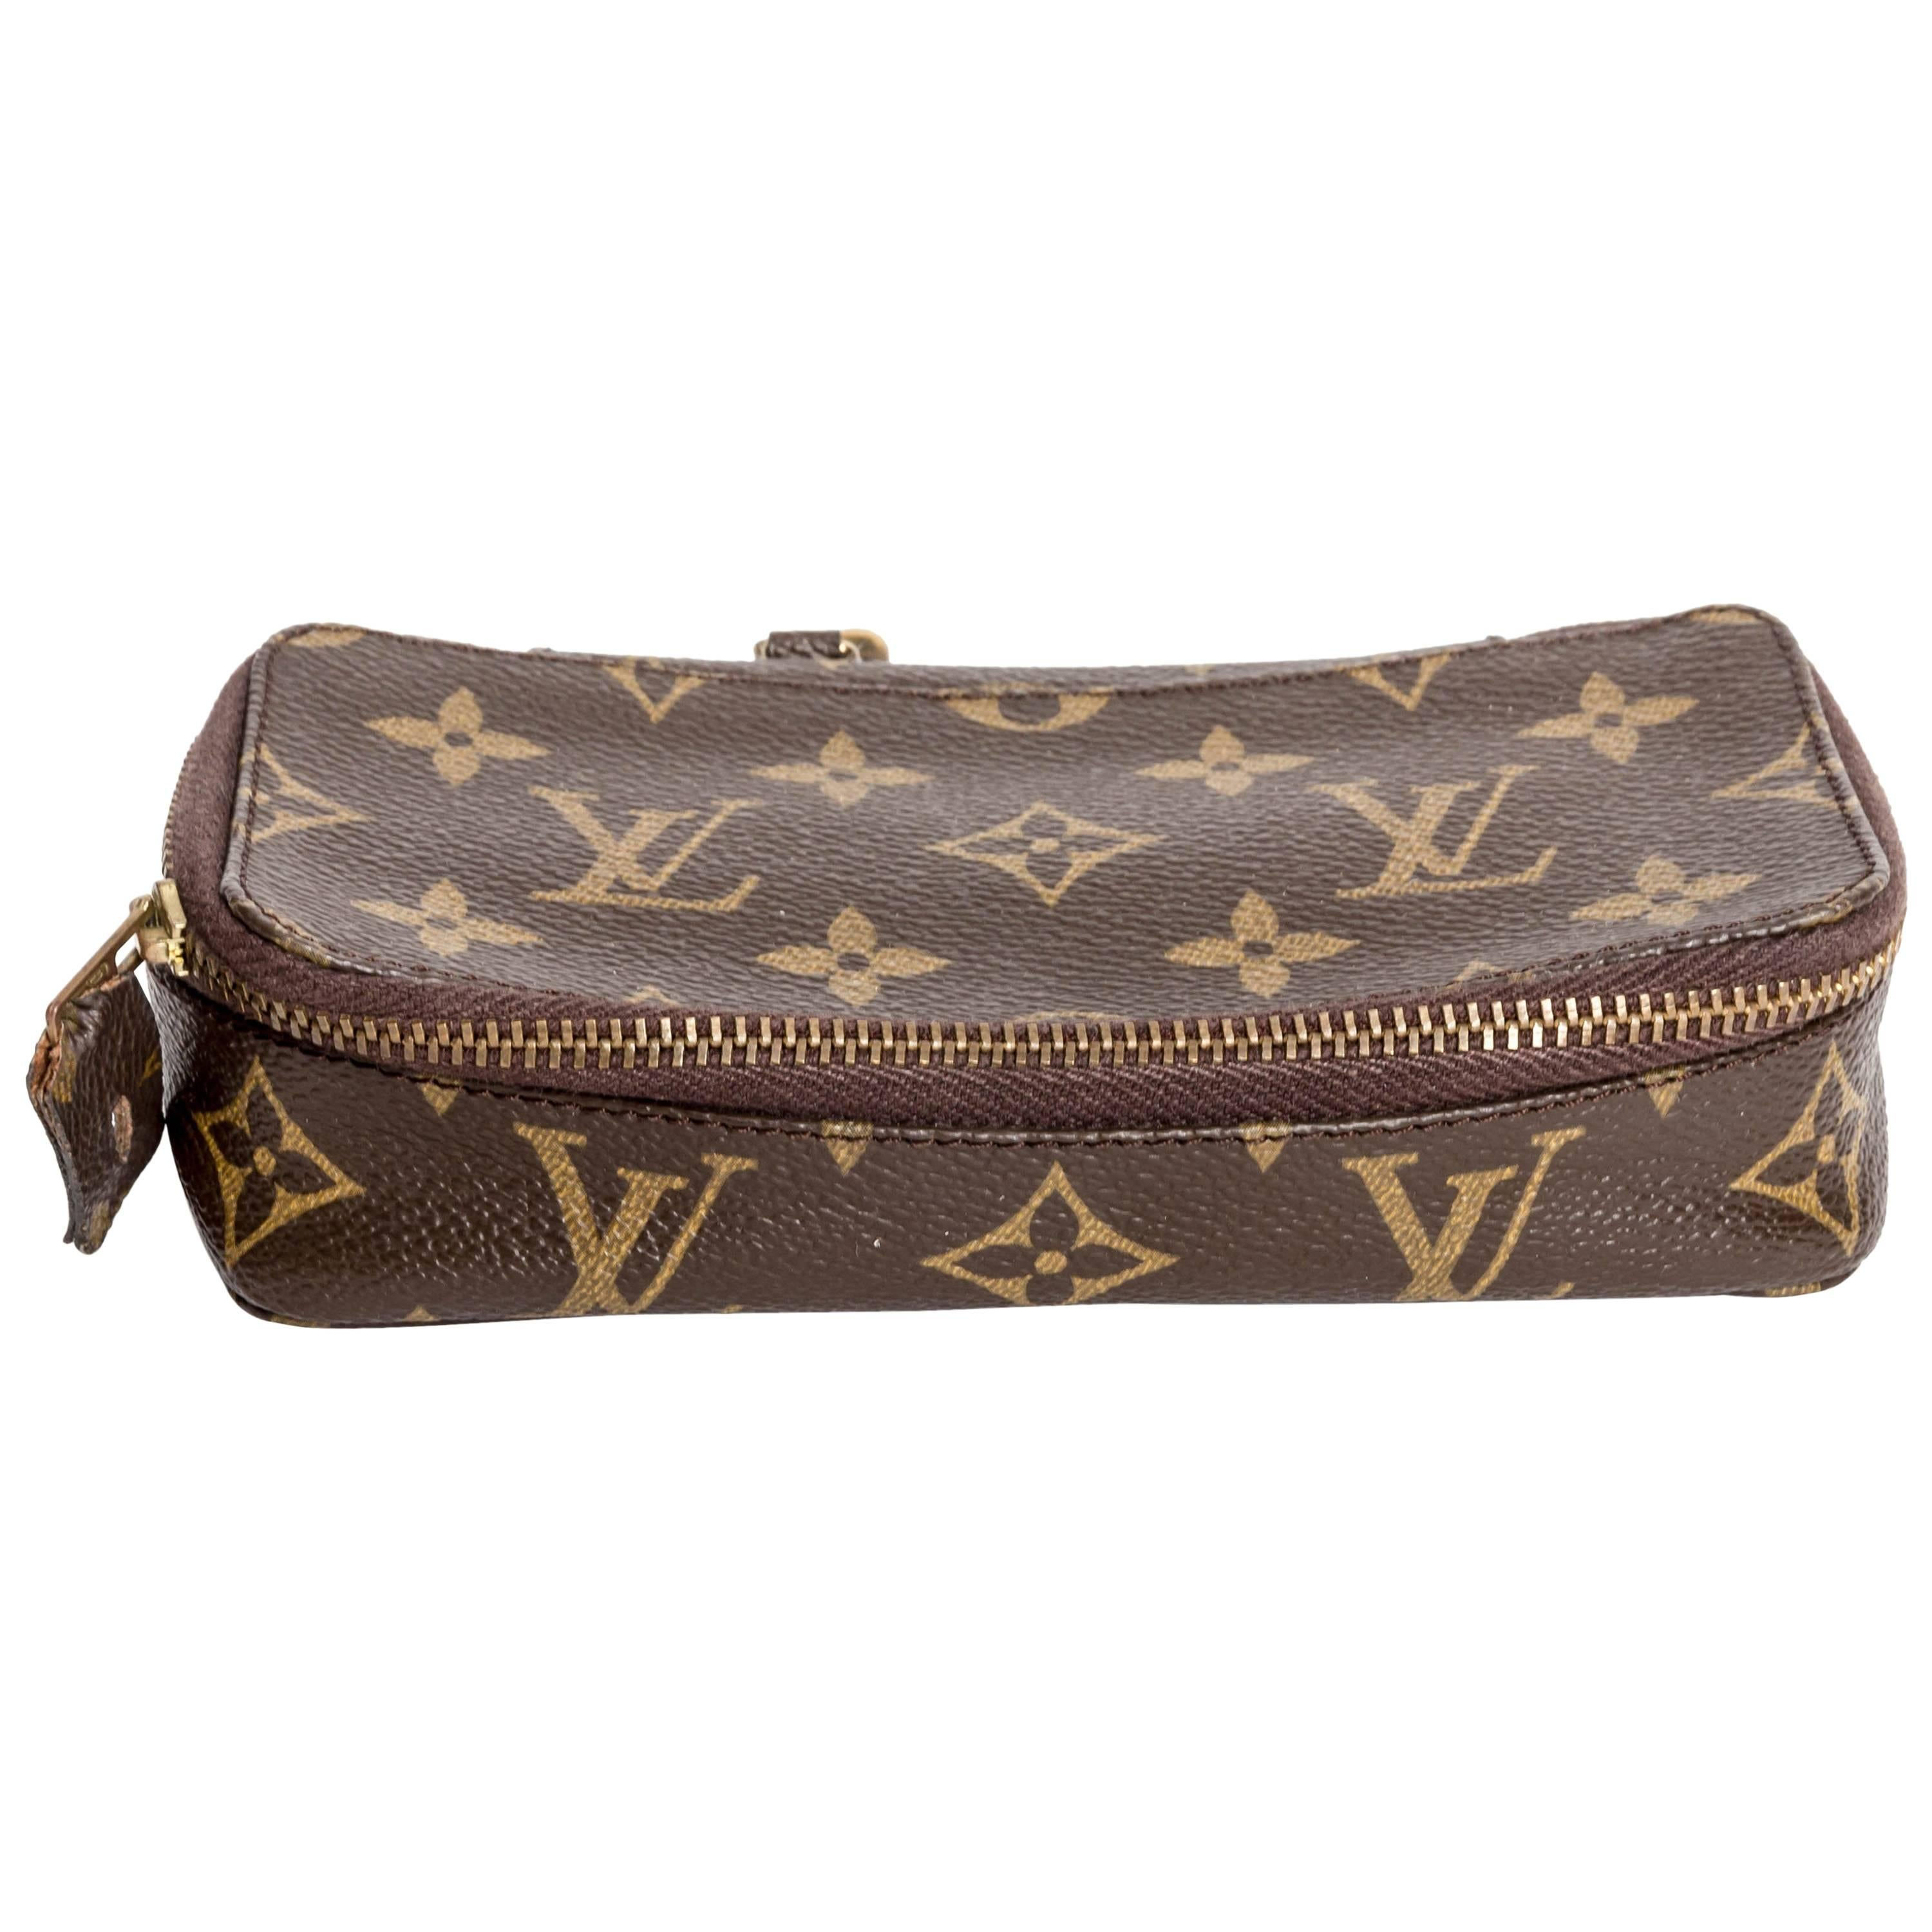 Vintage Louis Vuitton Wallets and Small Accessories 132 For Sale